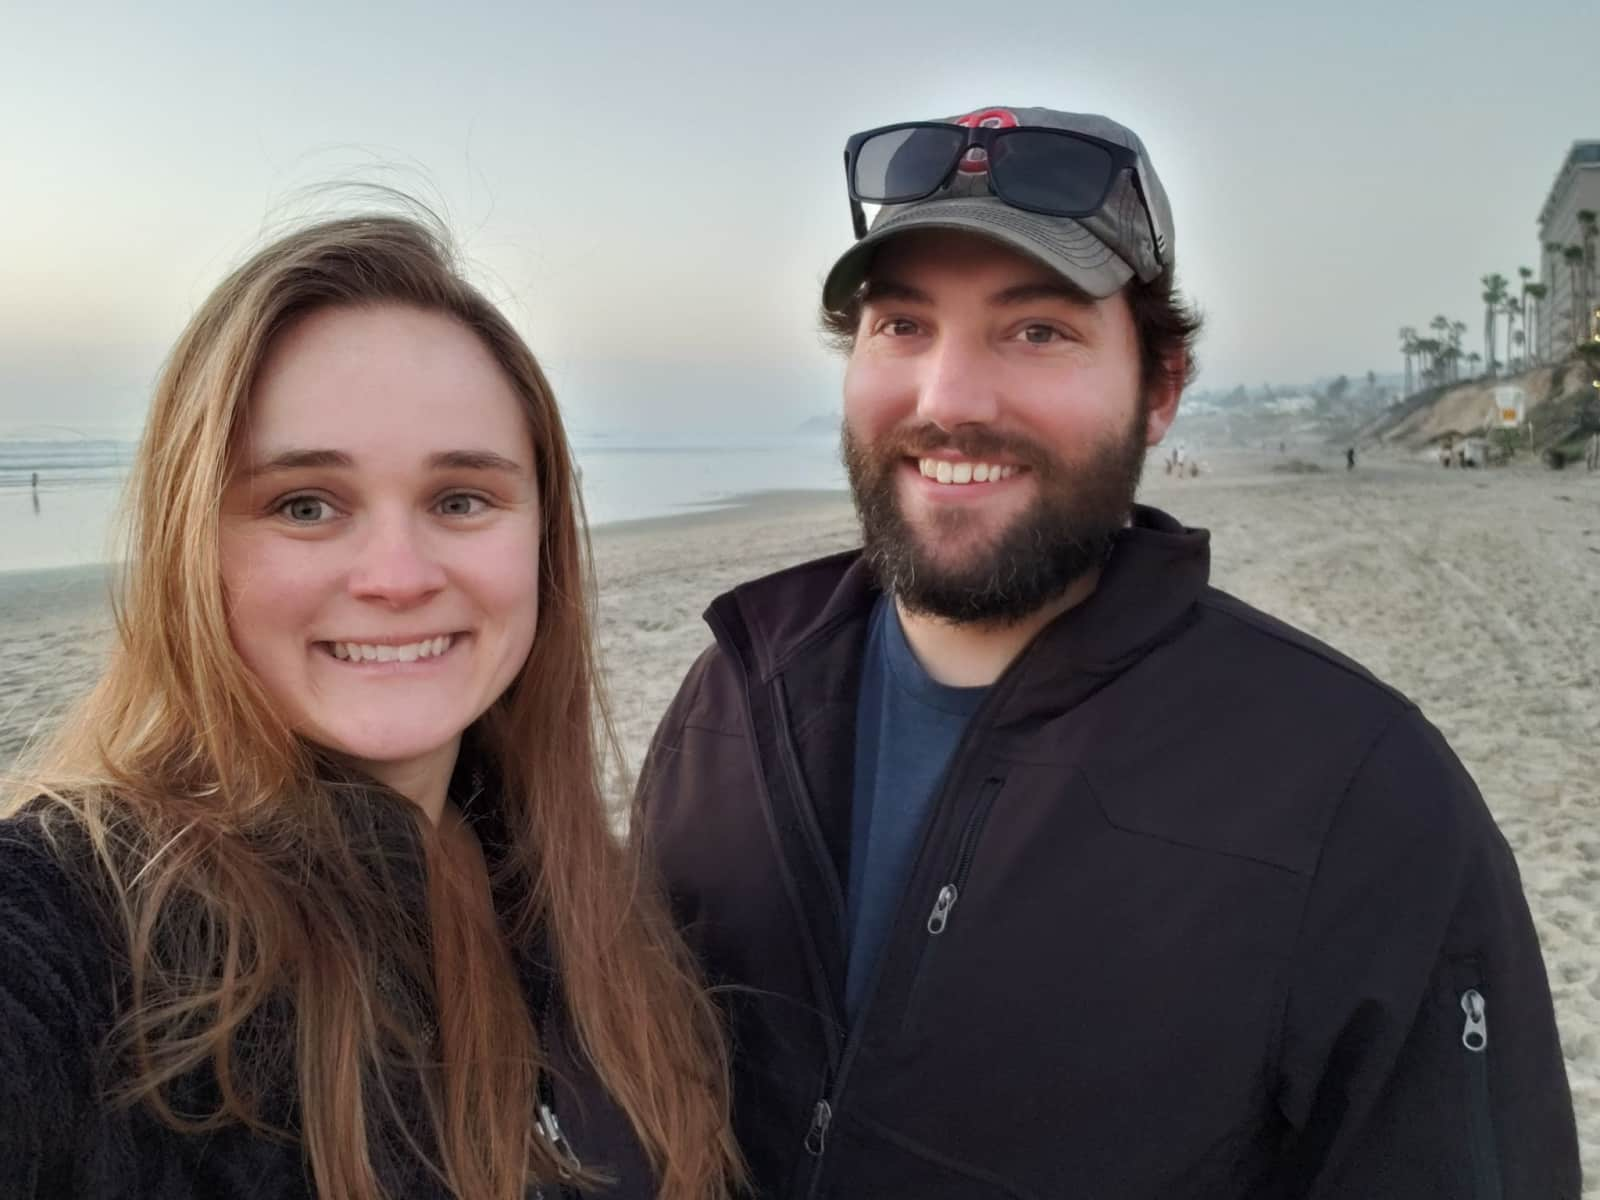 Danielle & Brodin from San Diego, California, United States